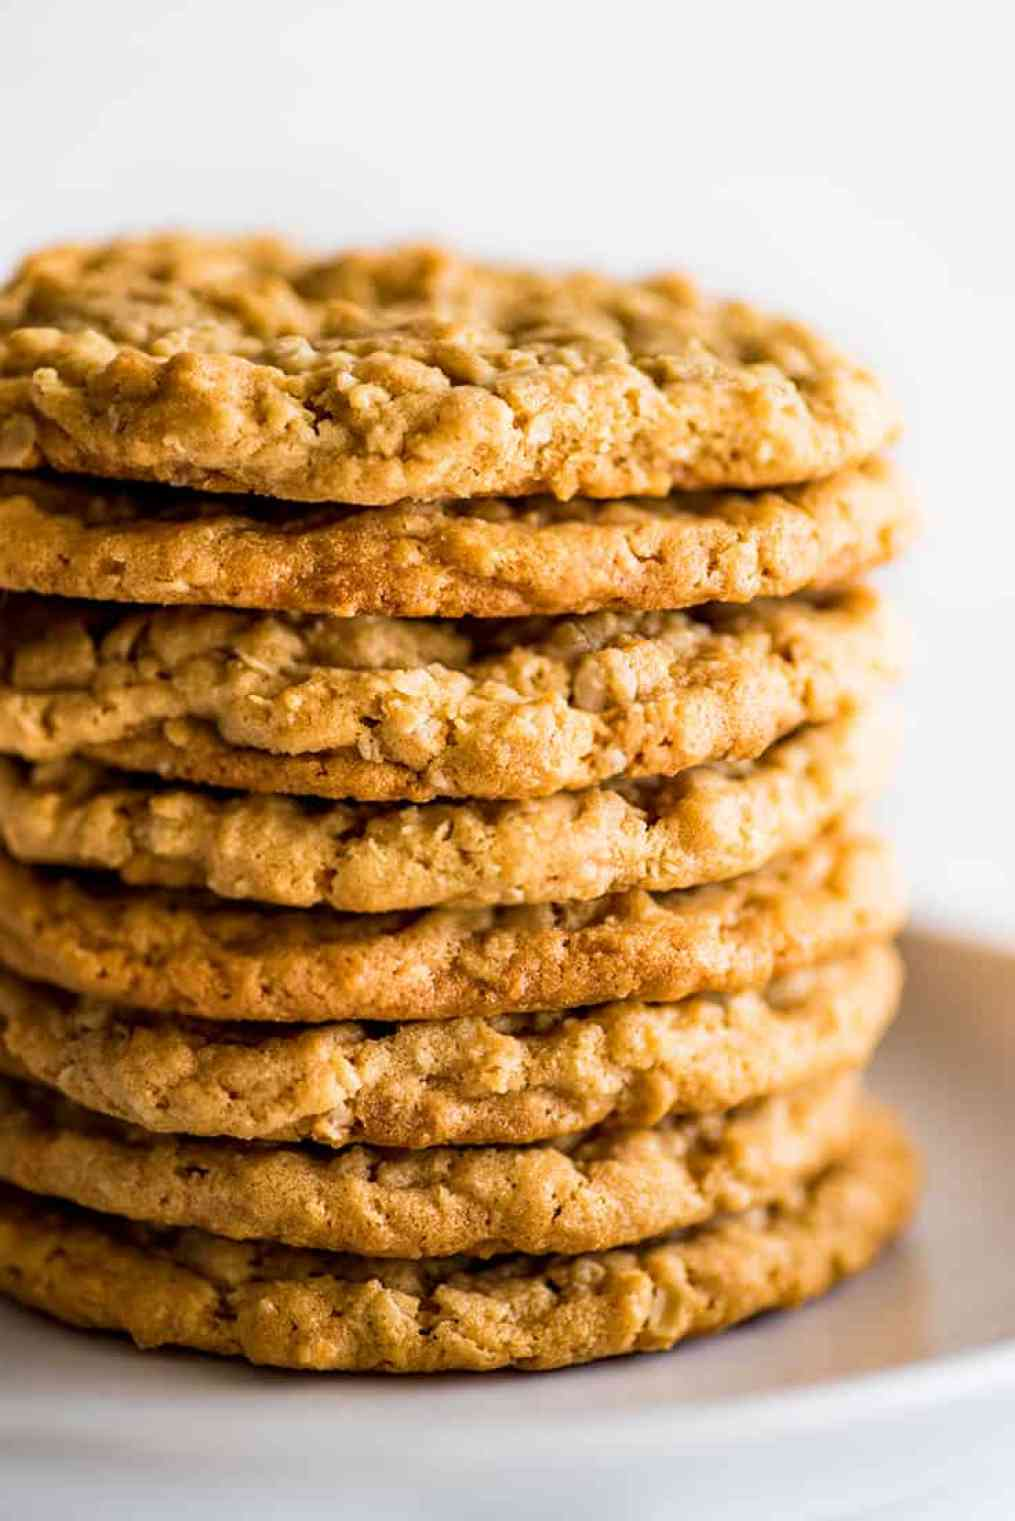 10 Yummy Peanut Butter Cookies